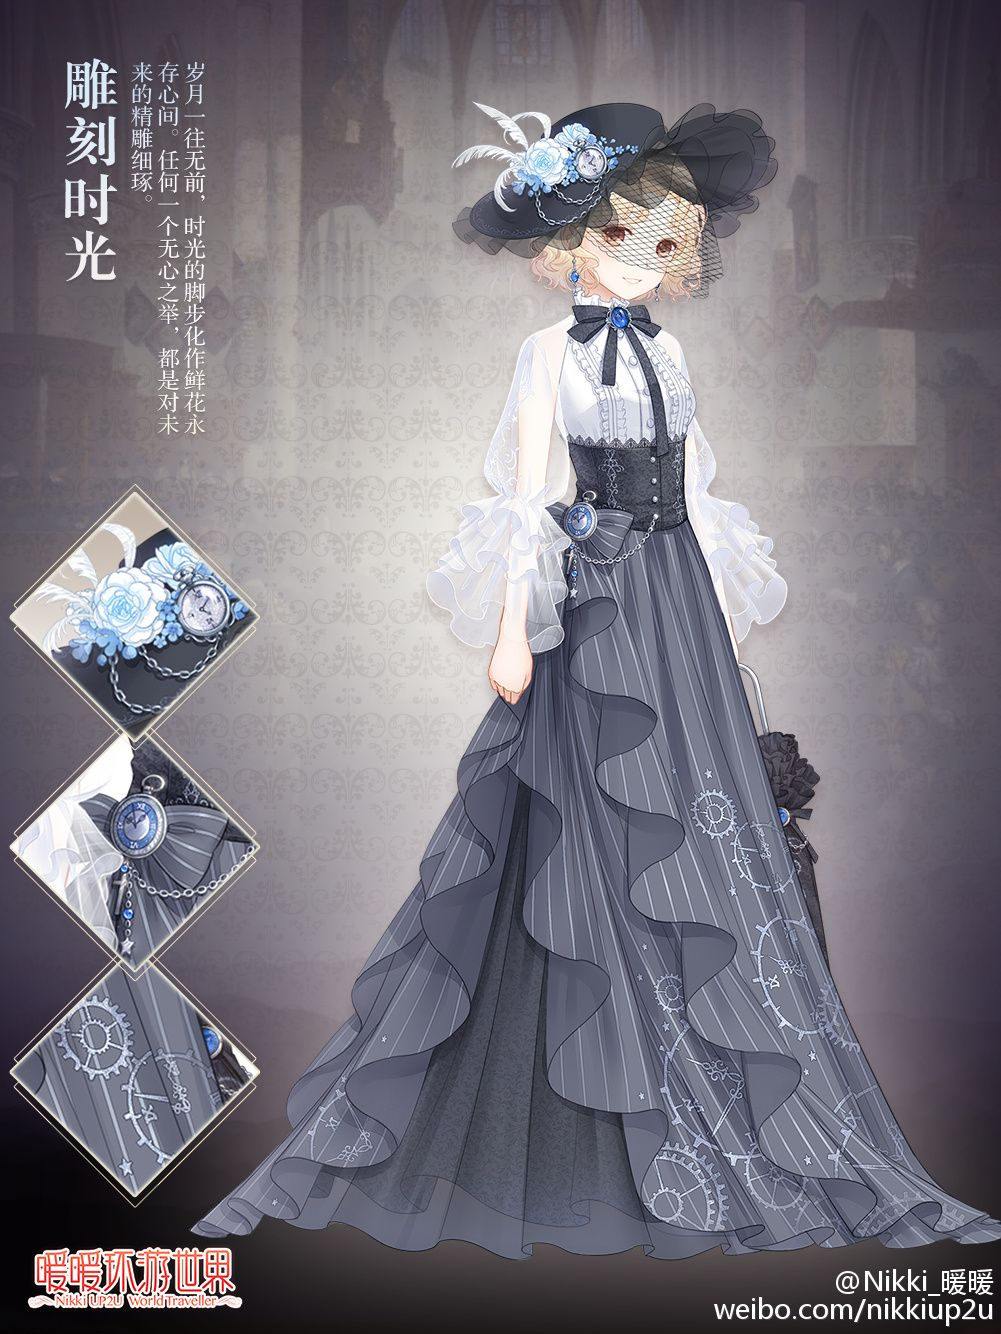 Old fashioned anime dress. So fancy and antique. 드레스, 의상